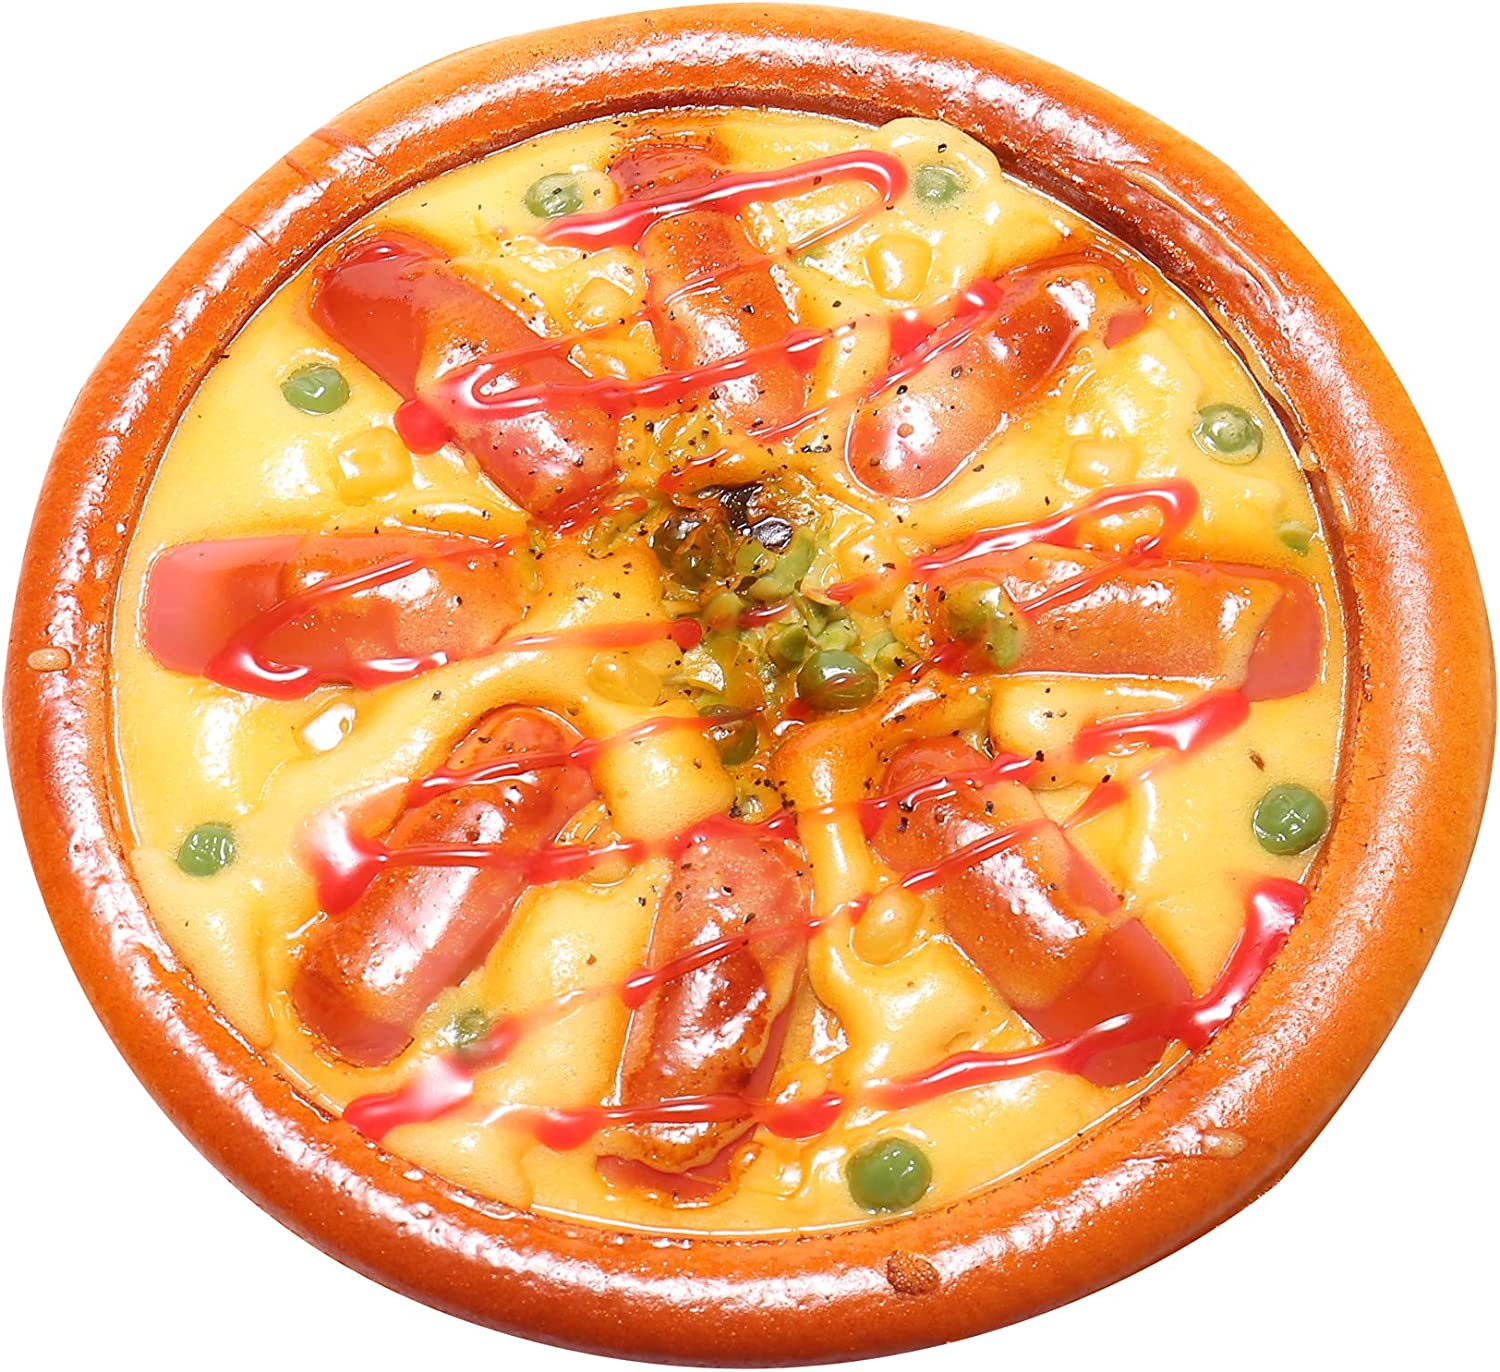 Fake Pizza for Display, Artificial Seafood Hotdog Peigen Play Bake Foods, Perfect for Kids Pretend Cook Party, Kitchen Realistic Foods Decorations, 1 Piece (Ham Pizza)